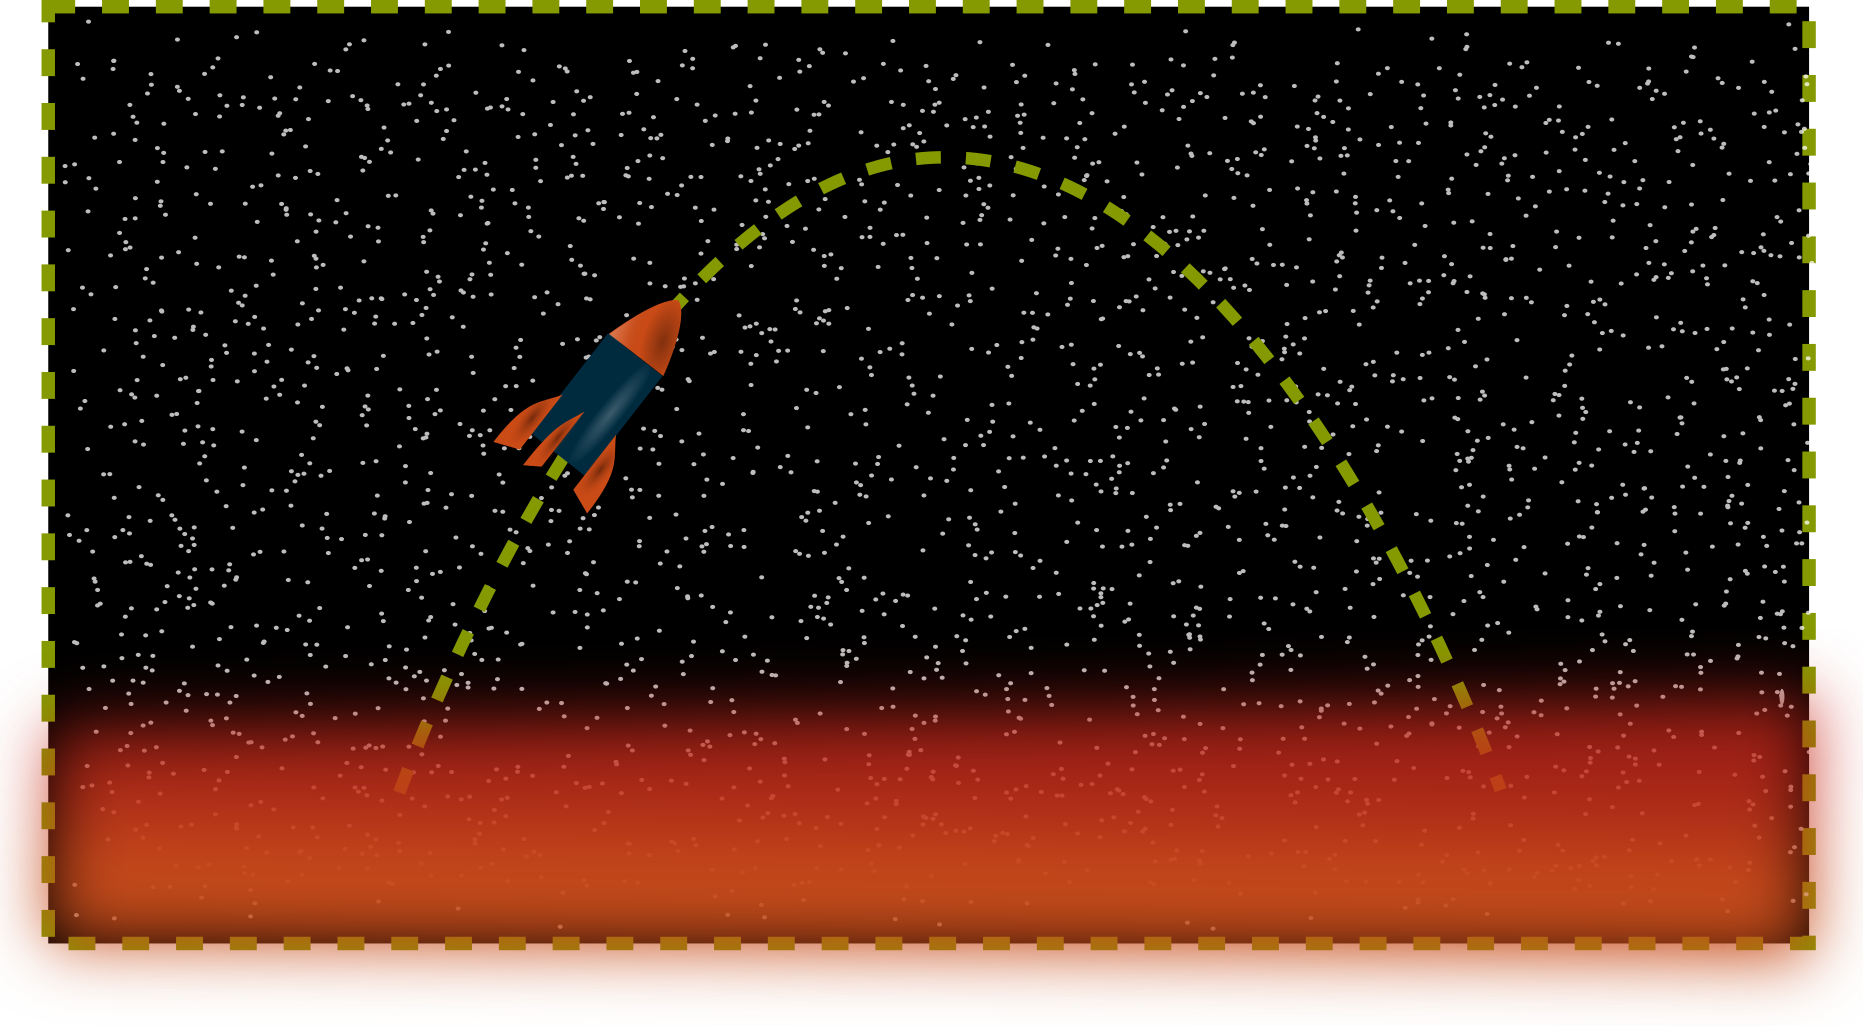 Intro to Jupyter and Projectile Motion